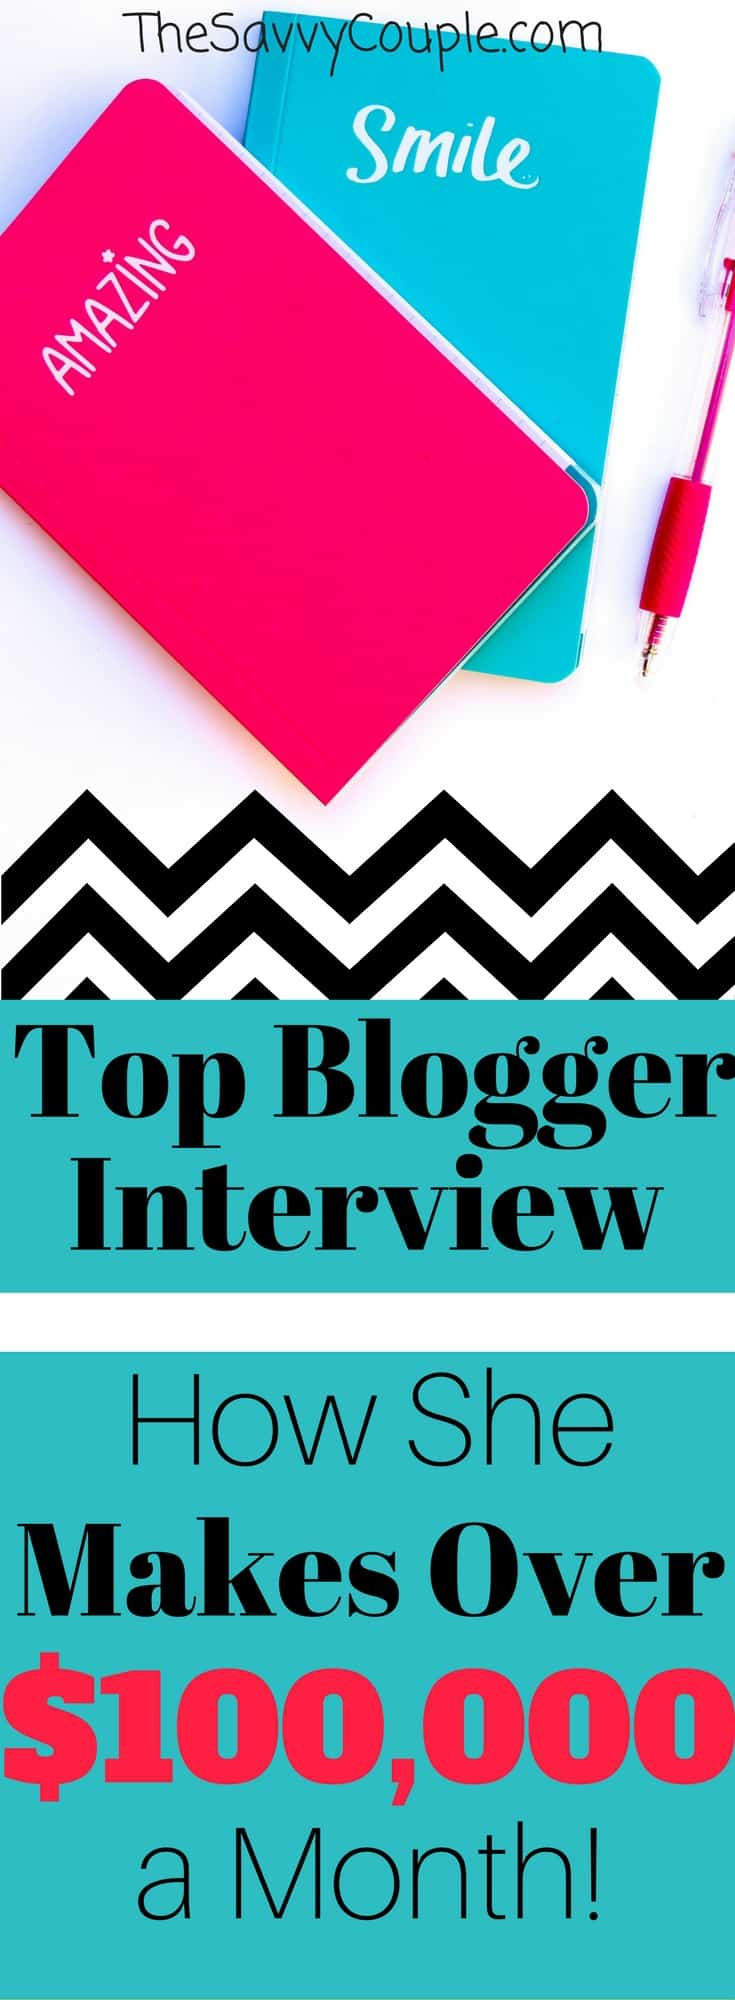 How this blogger makes $100,000 per month from her blog. This is an absolutely incredible interview from one of the most influential bloggers on the internet. Learn how she grew her blog traffic, monetized, and is now making a full-time income while traveling. How to start a blog | traffic growth | blogging ideas | blogging income | income reports